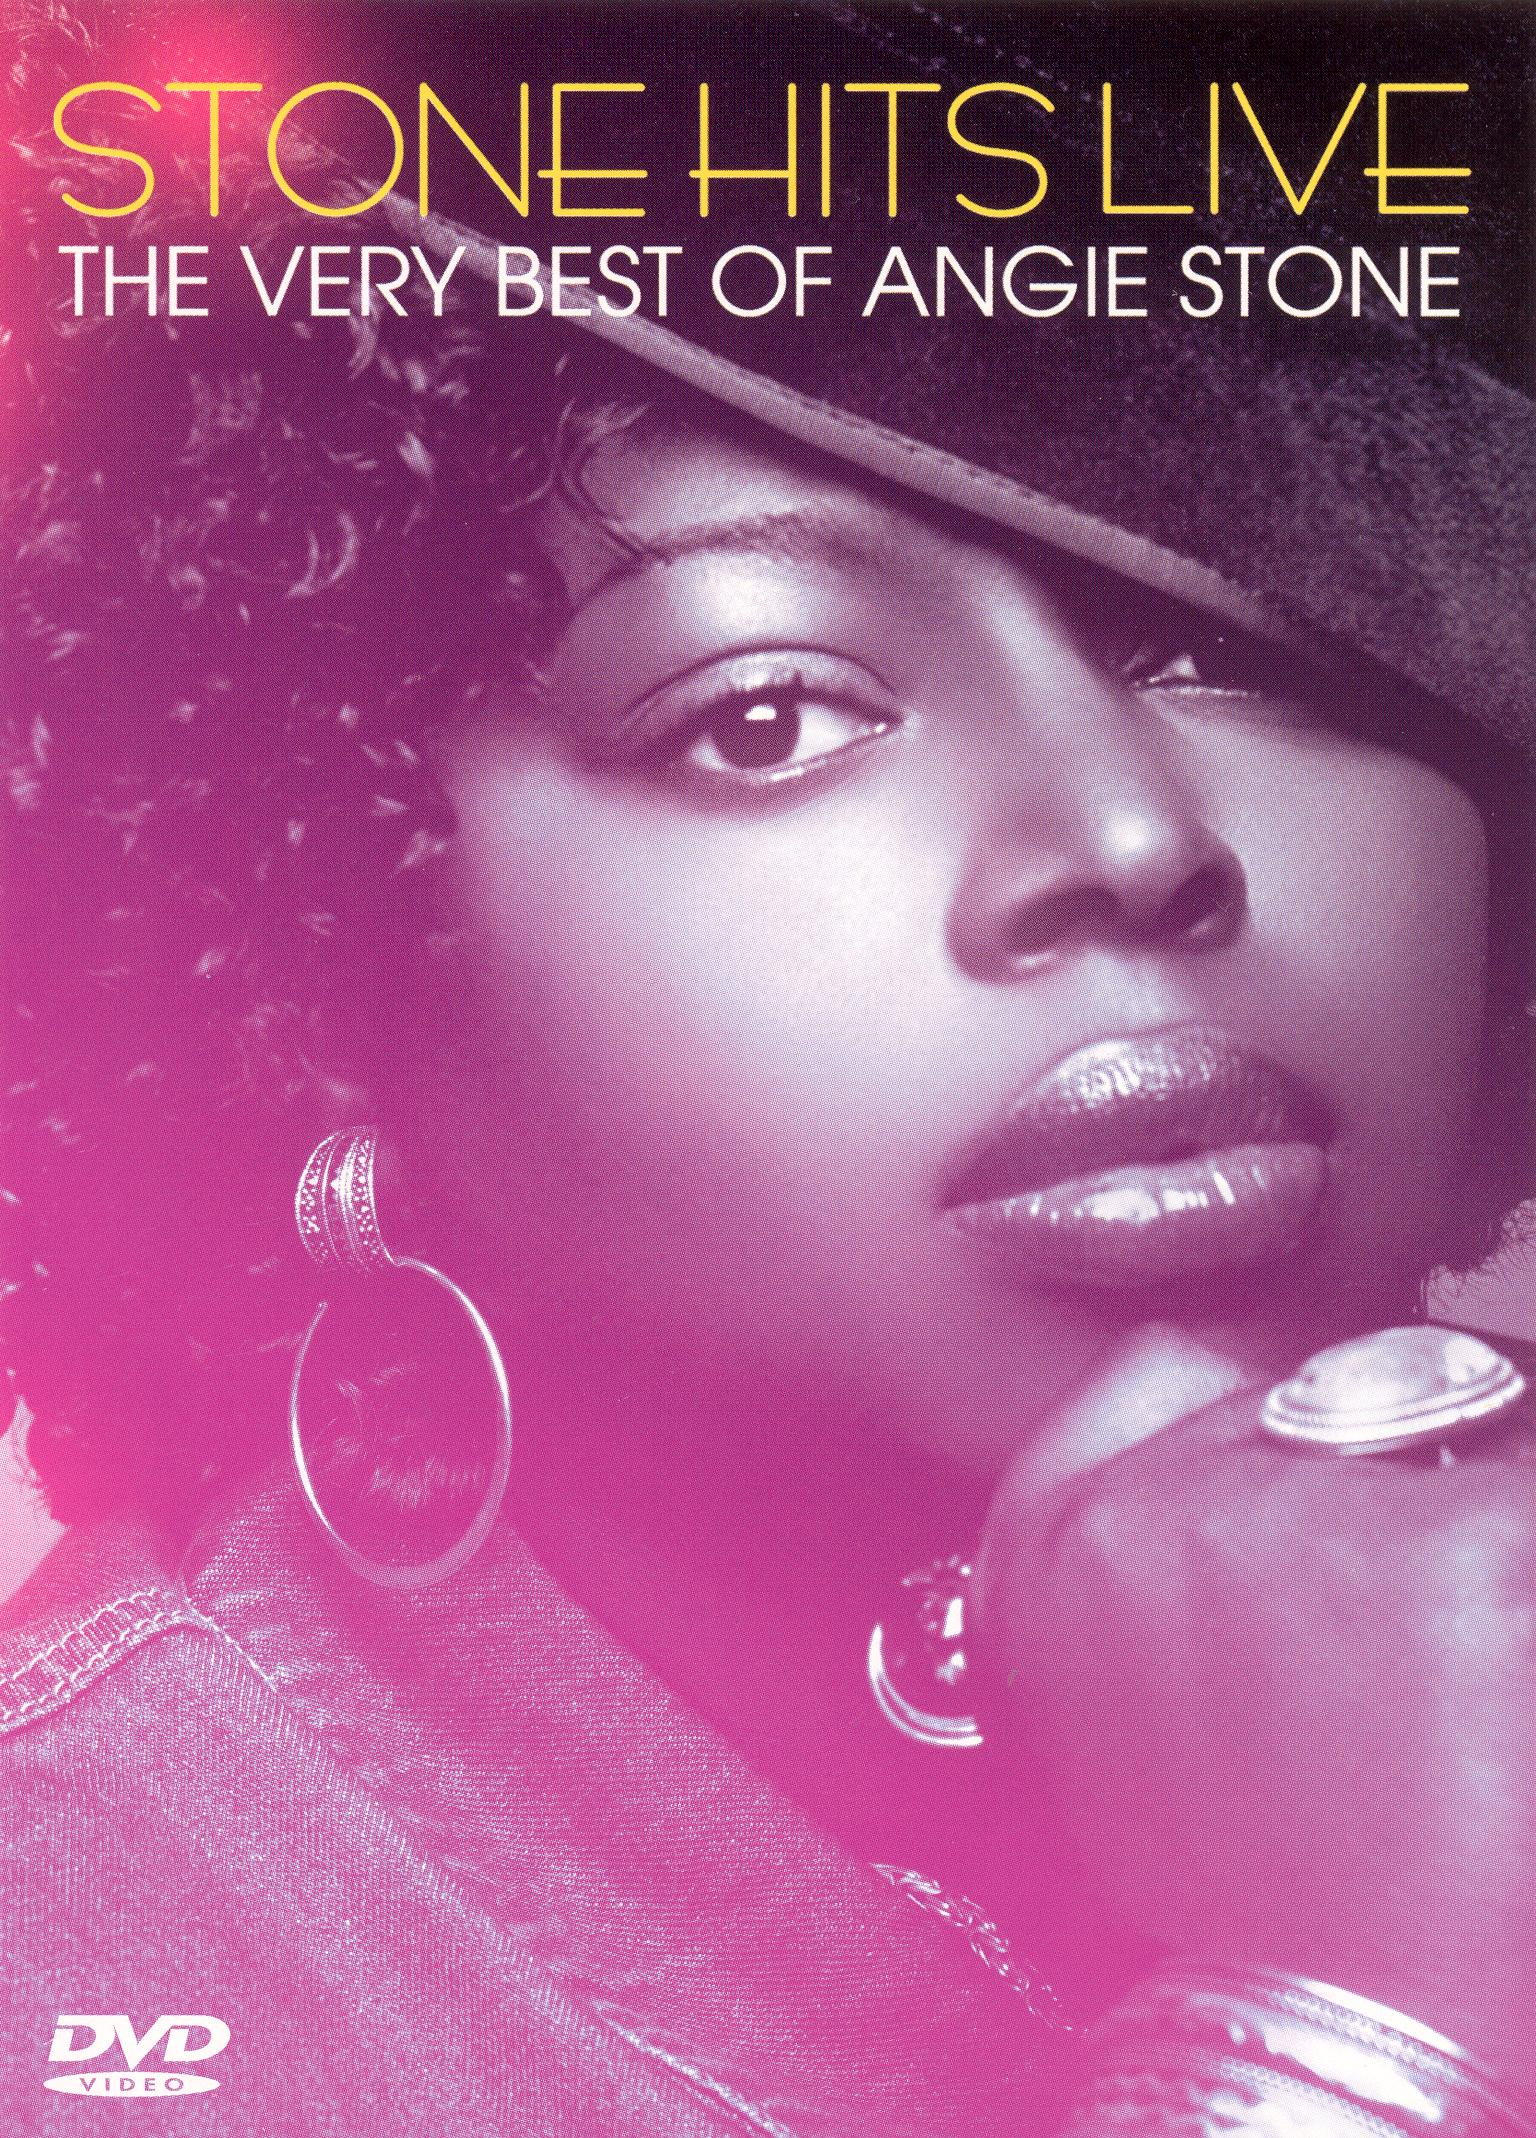 Angie Stone: Stone Hits - The Very Best of Angie Stone